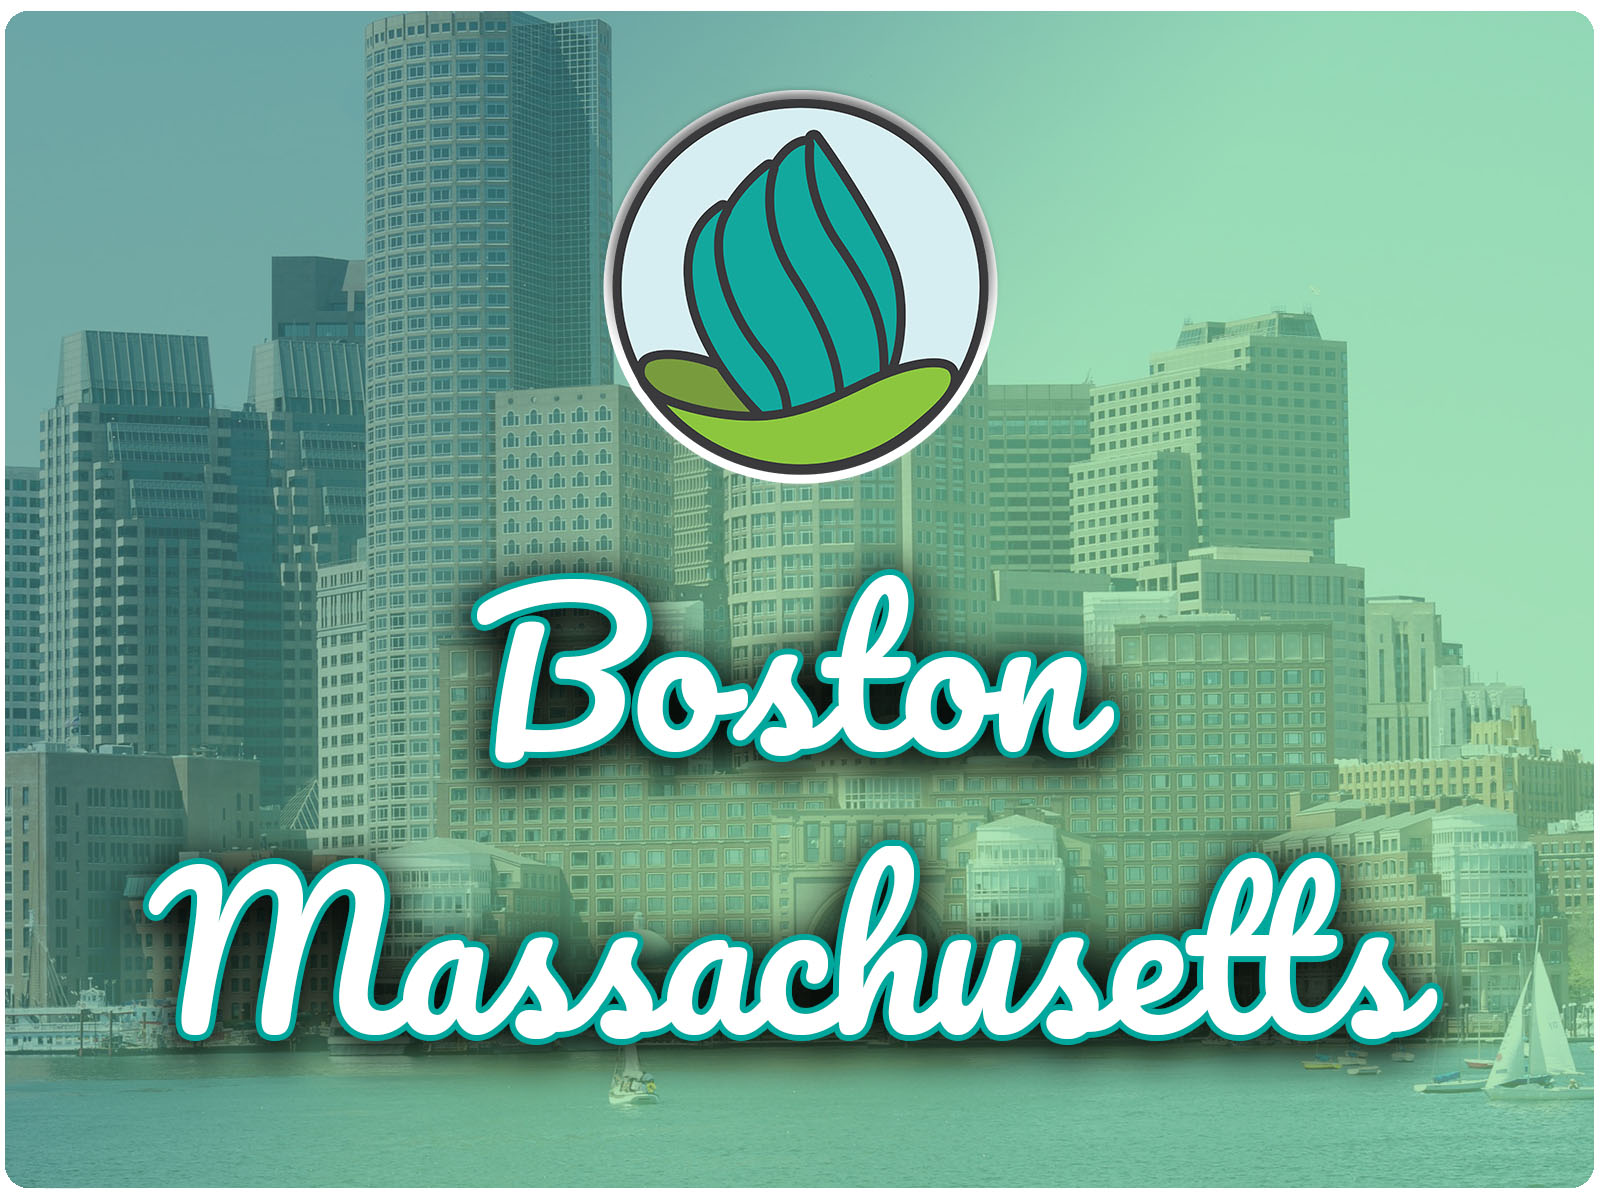 Image of the Boston skyline and a blue-green gradient overlay, and the words 'Boston, Massachusetts' in cursive and NDC logo on top